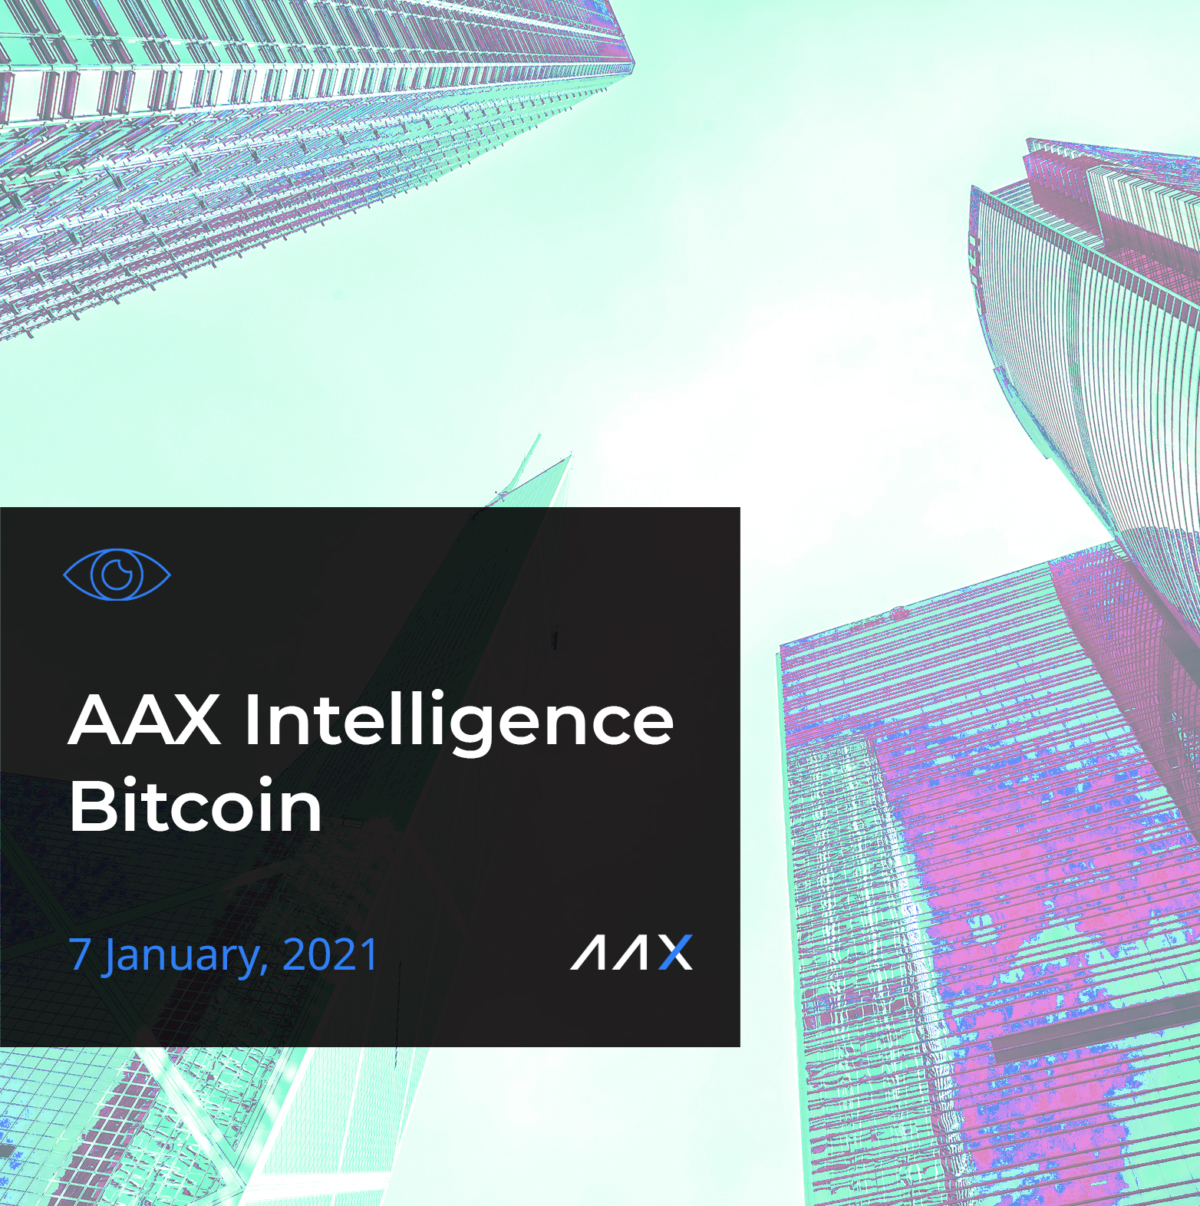 AAX Intelligence: The Bitcoin Price in 2021